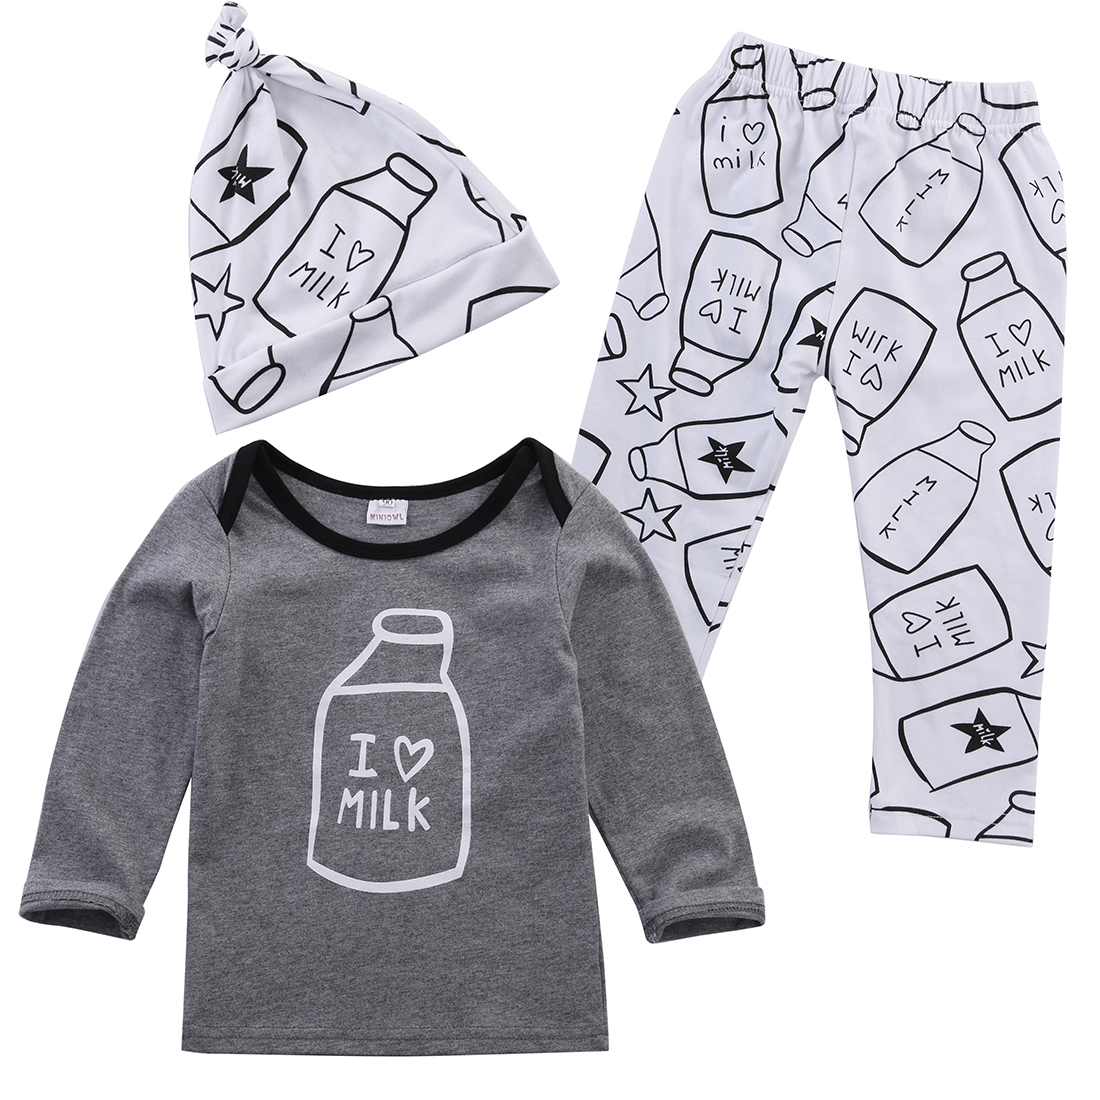 Newborns Kids Baby Girls Outfit Clothes T-shirt Tops+Long Pants Trousers 3PCS Set newborn baby girl clothes Clothing for babies